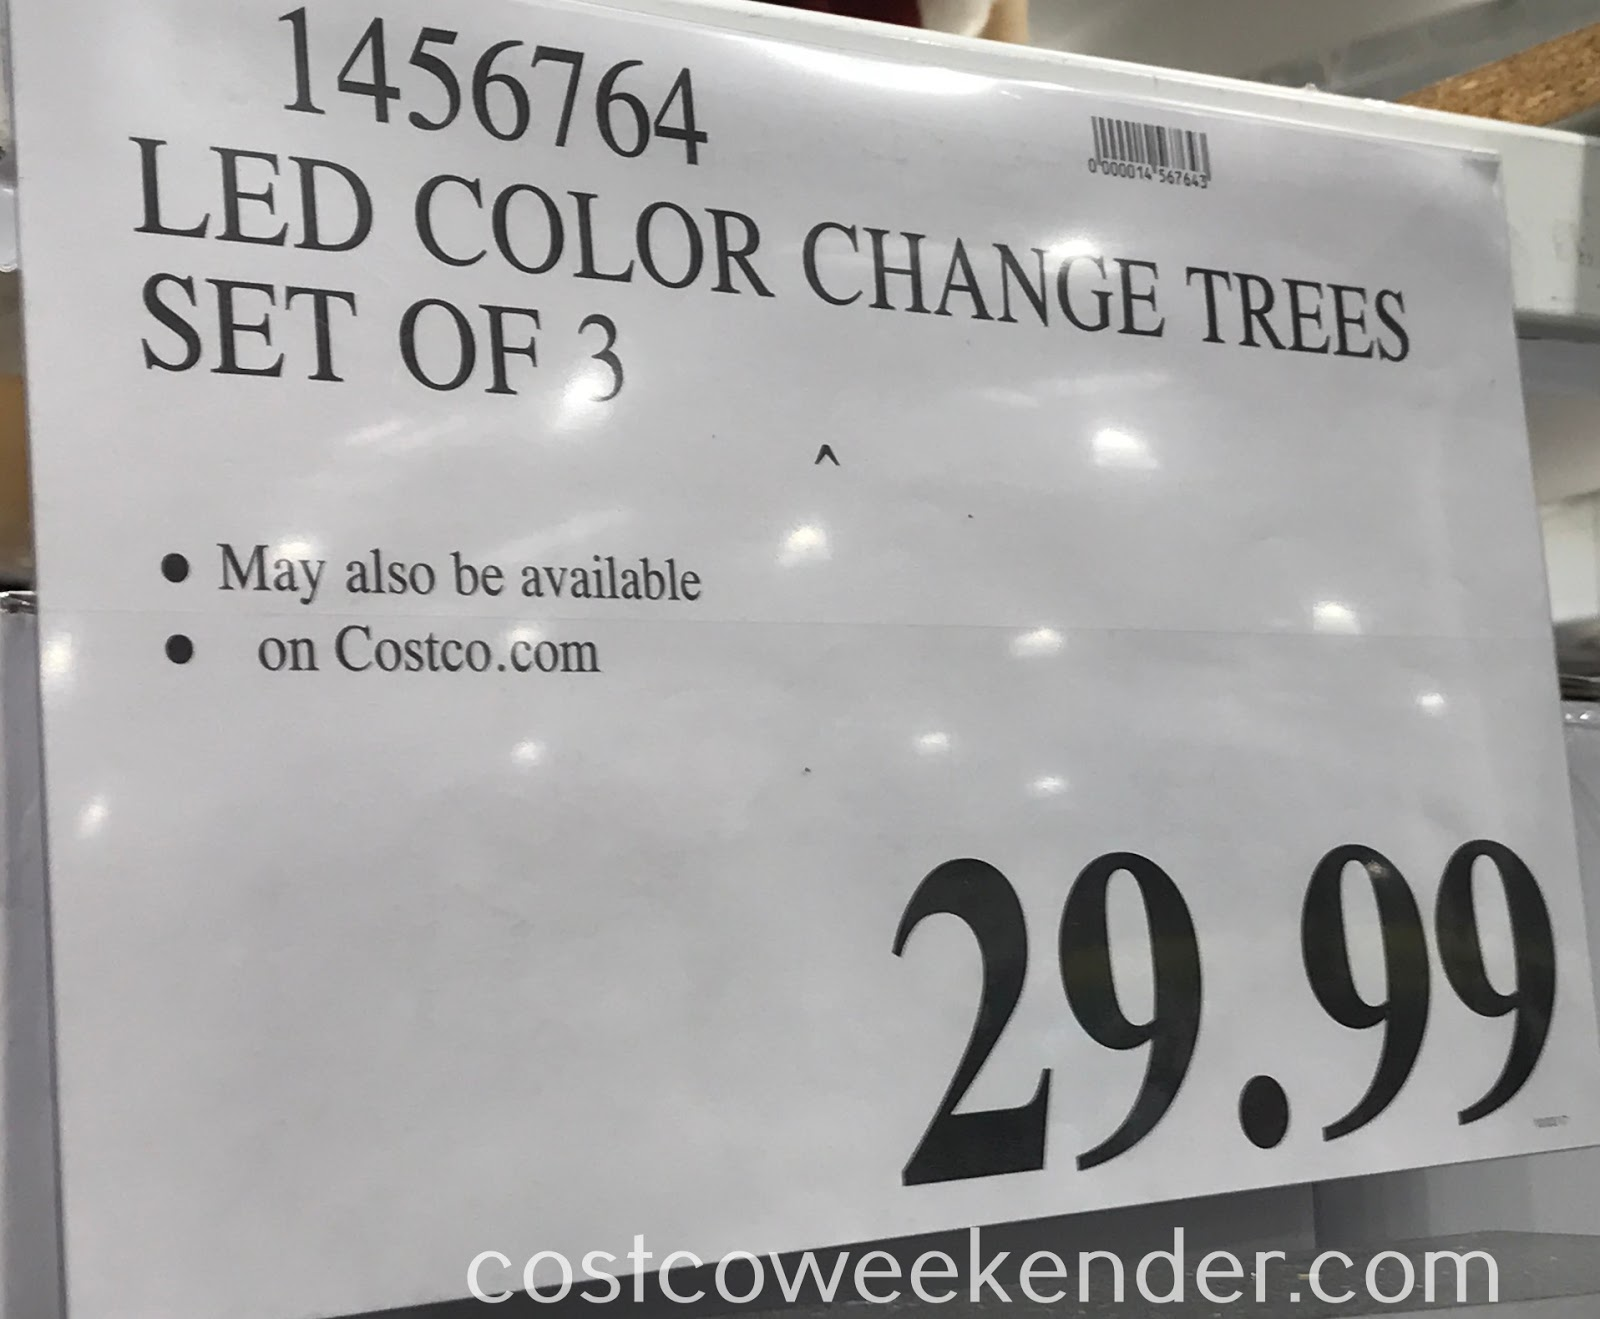 Deal for a set of 3 LED Color Changing Trees at Costco